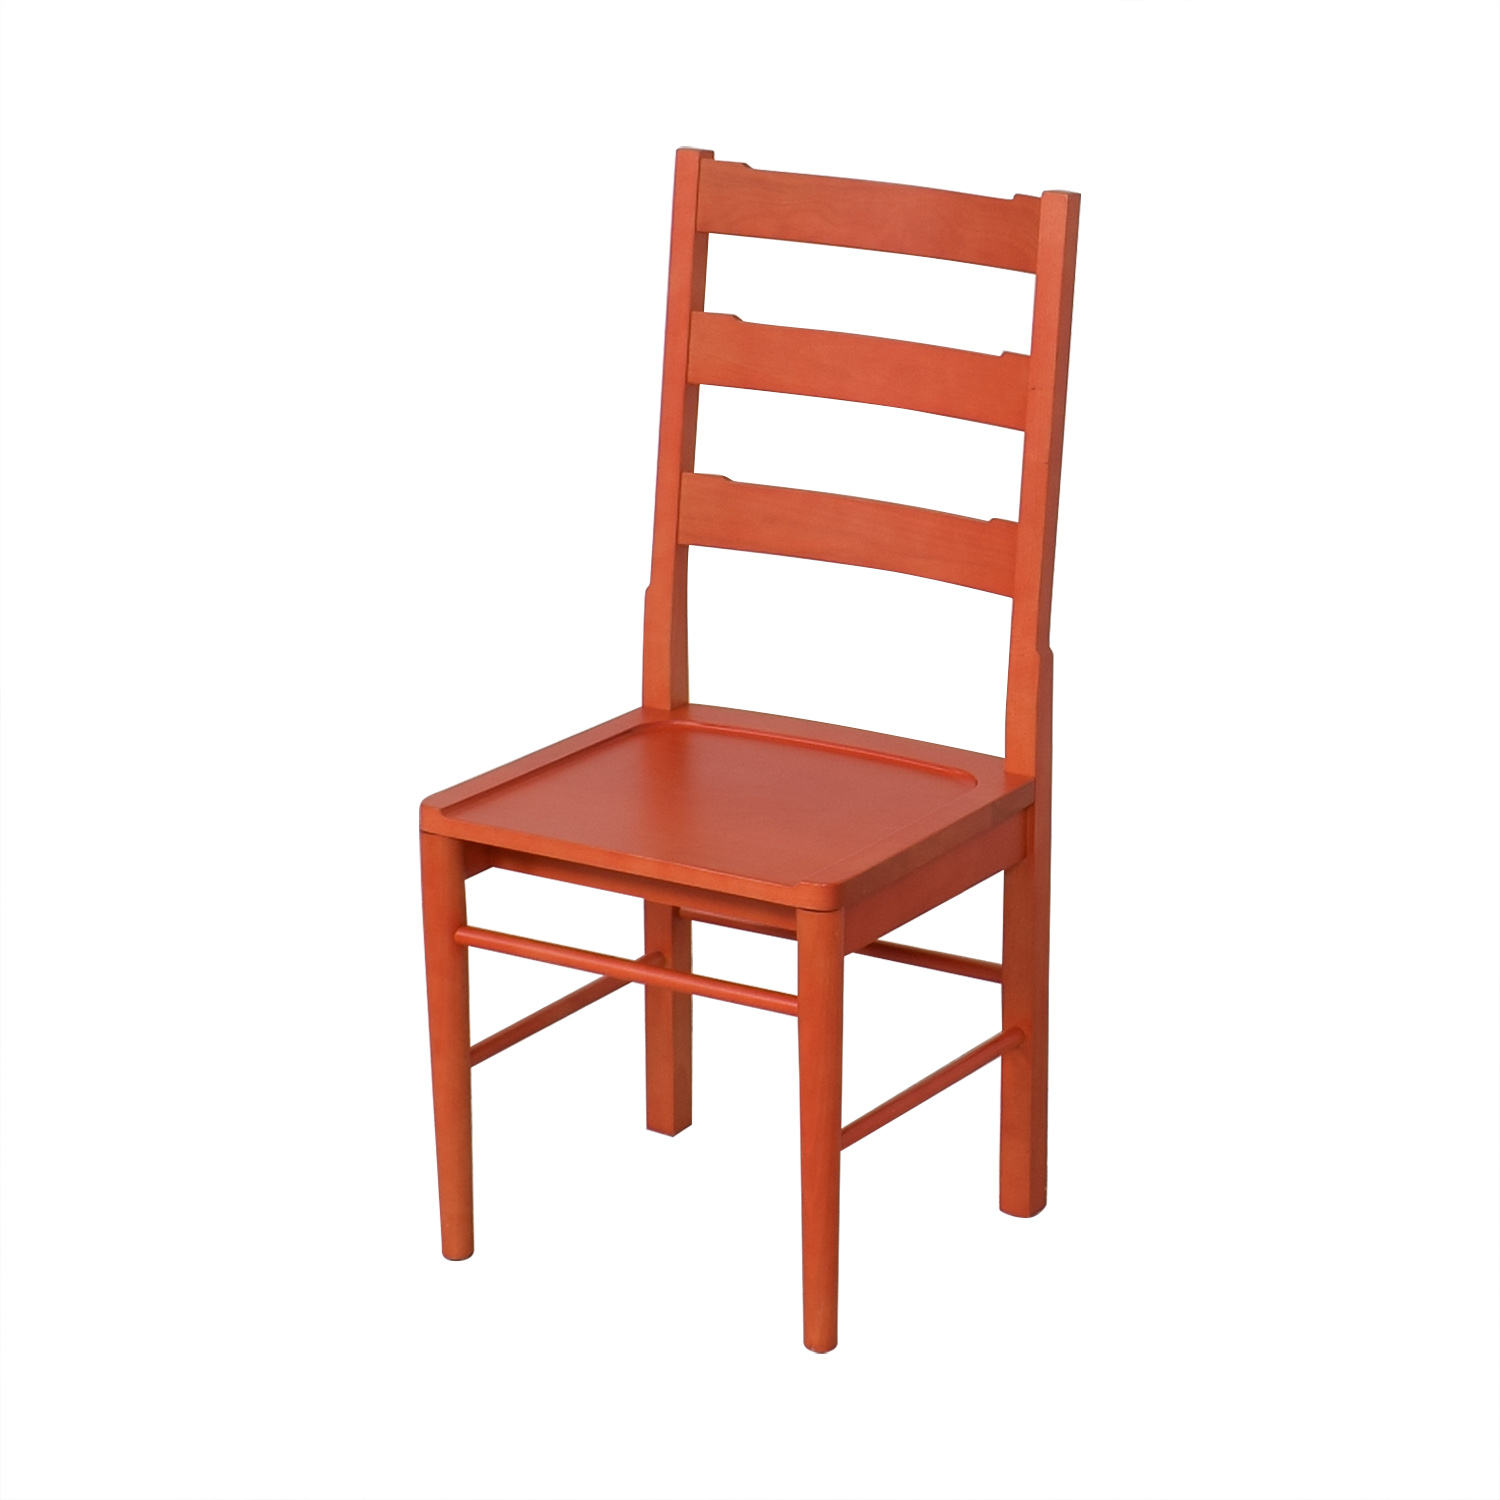 Rejuvenation O&G Ladderback Dining Chair Rejuvenation